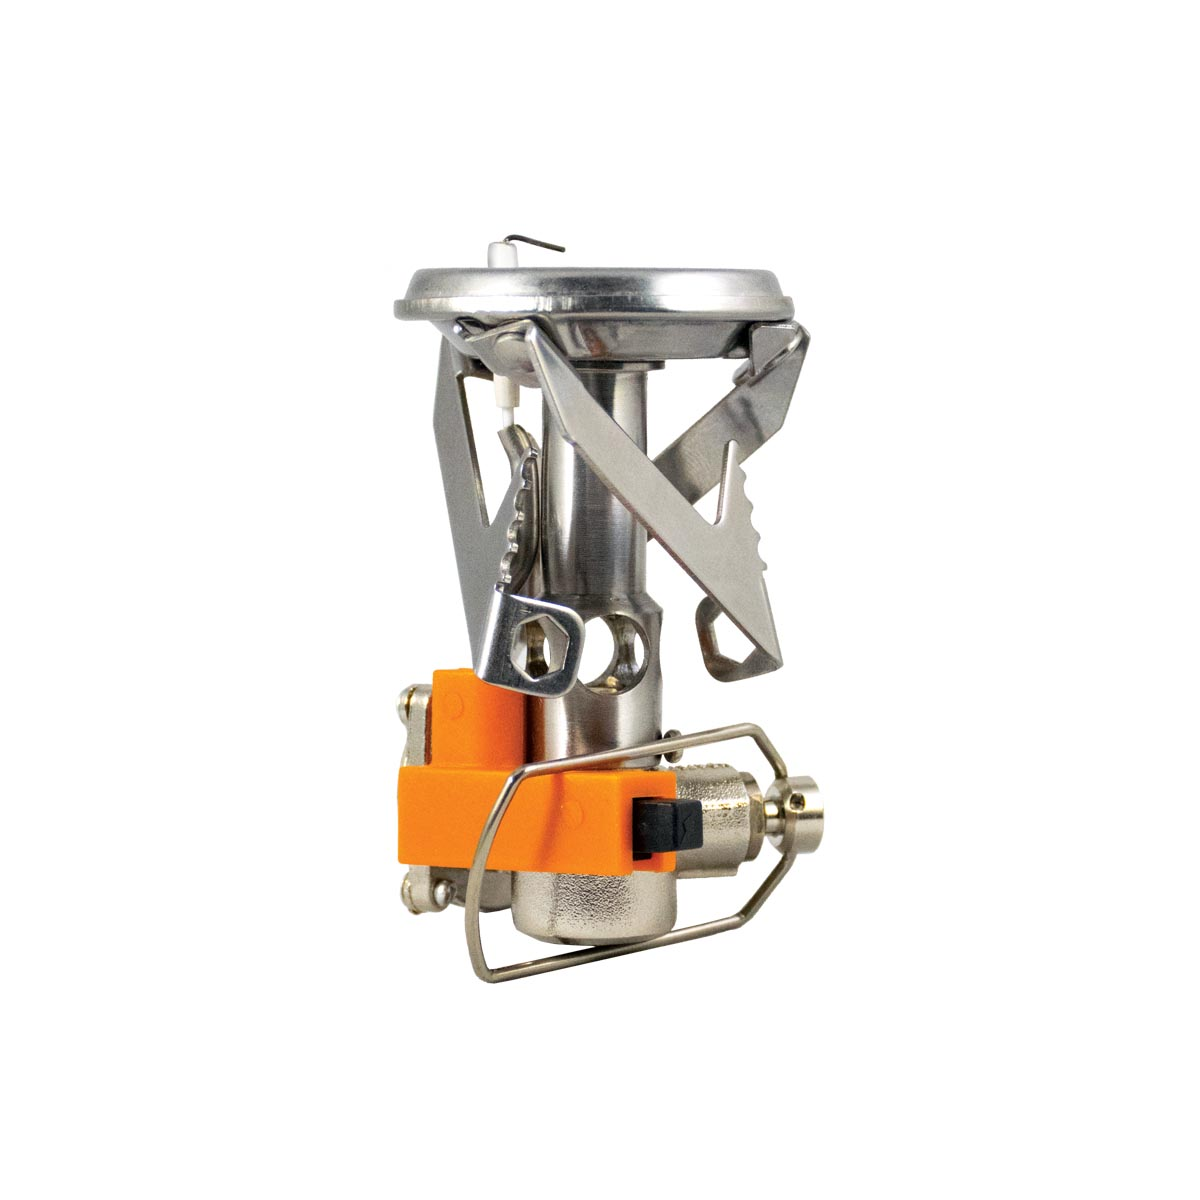 jetboil ultralight camping stove